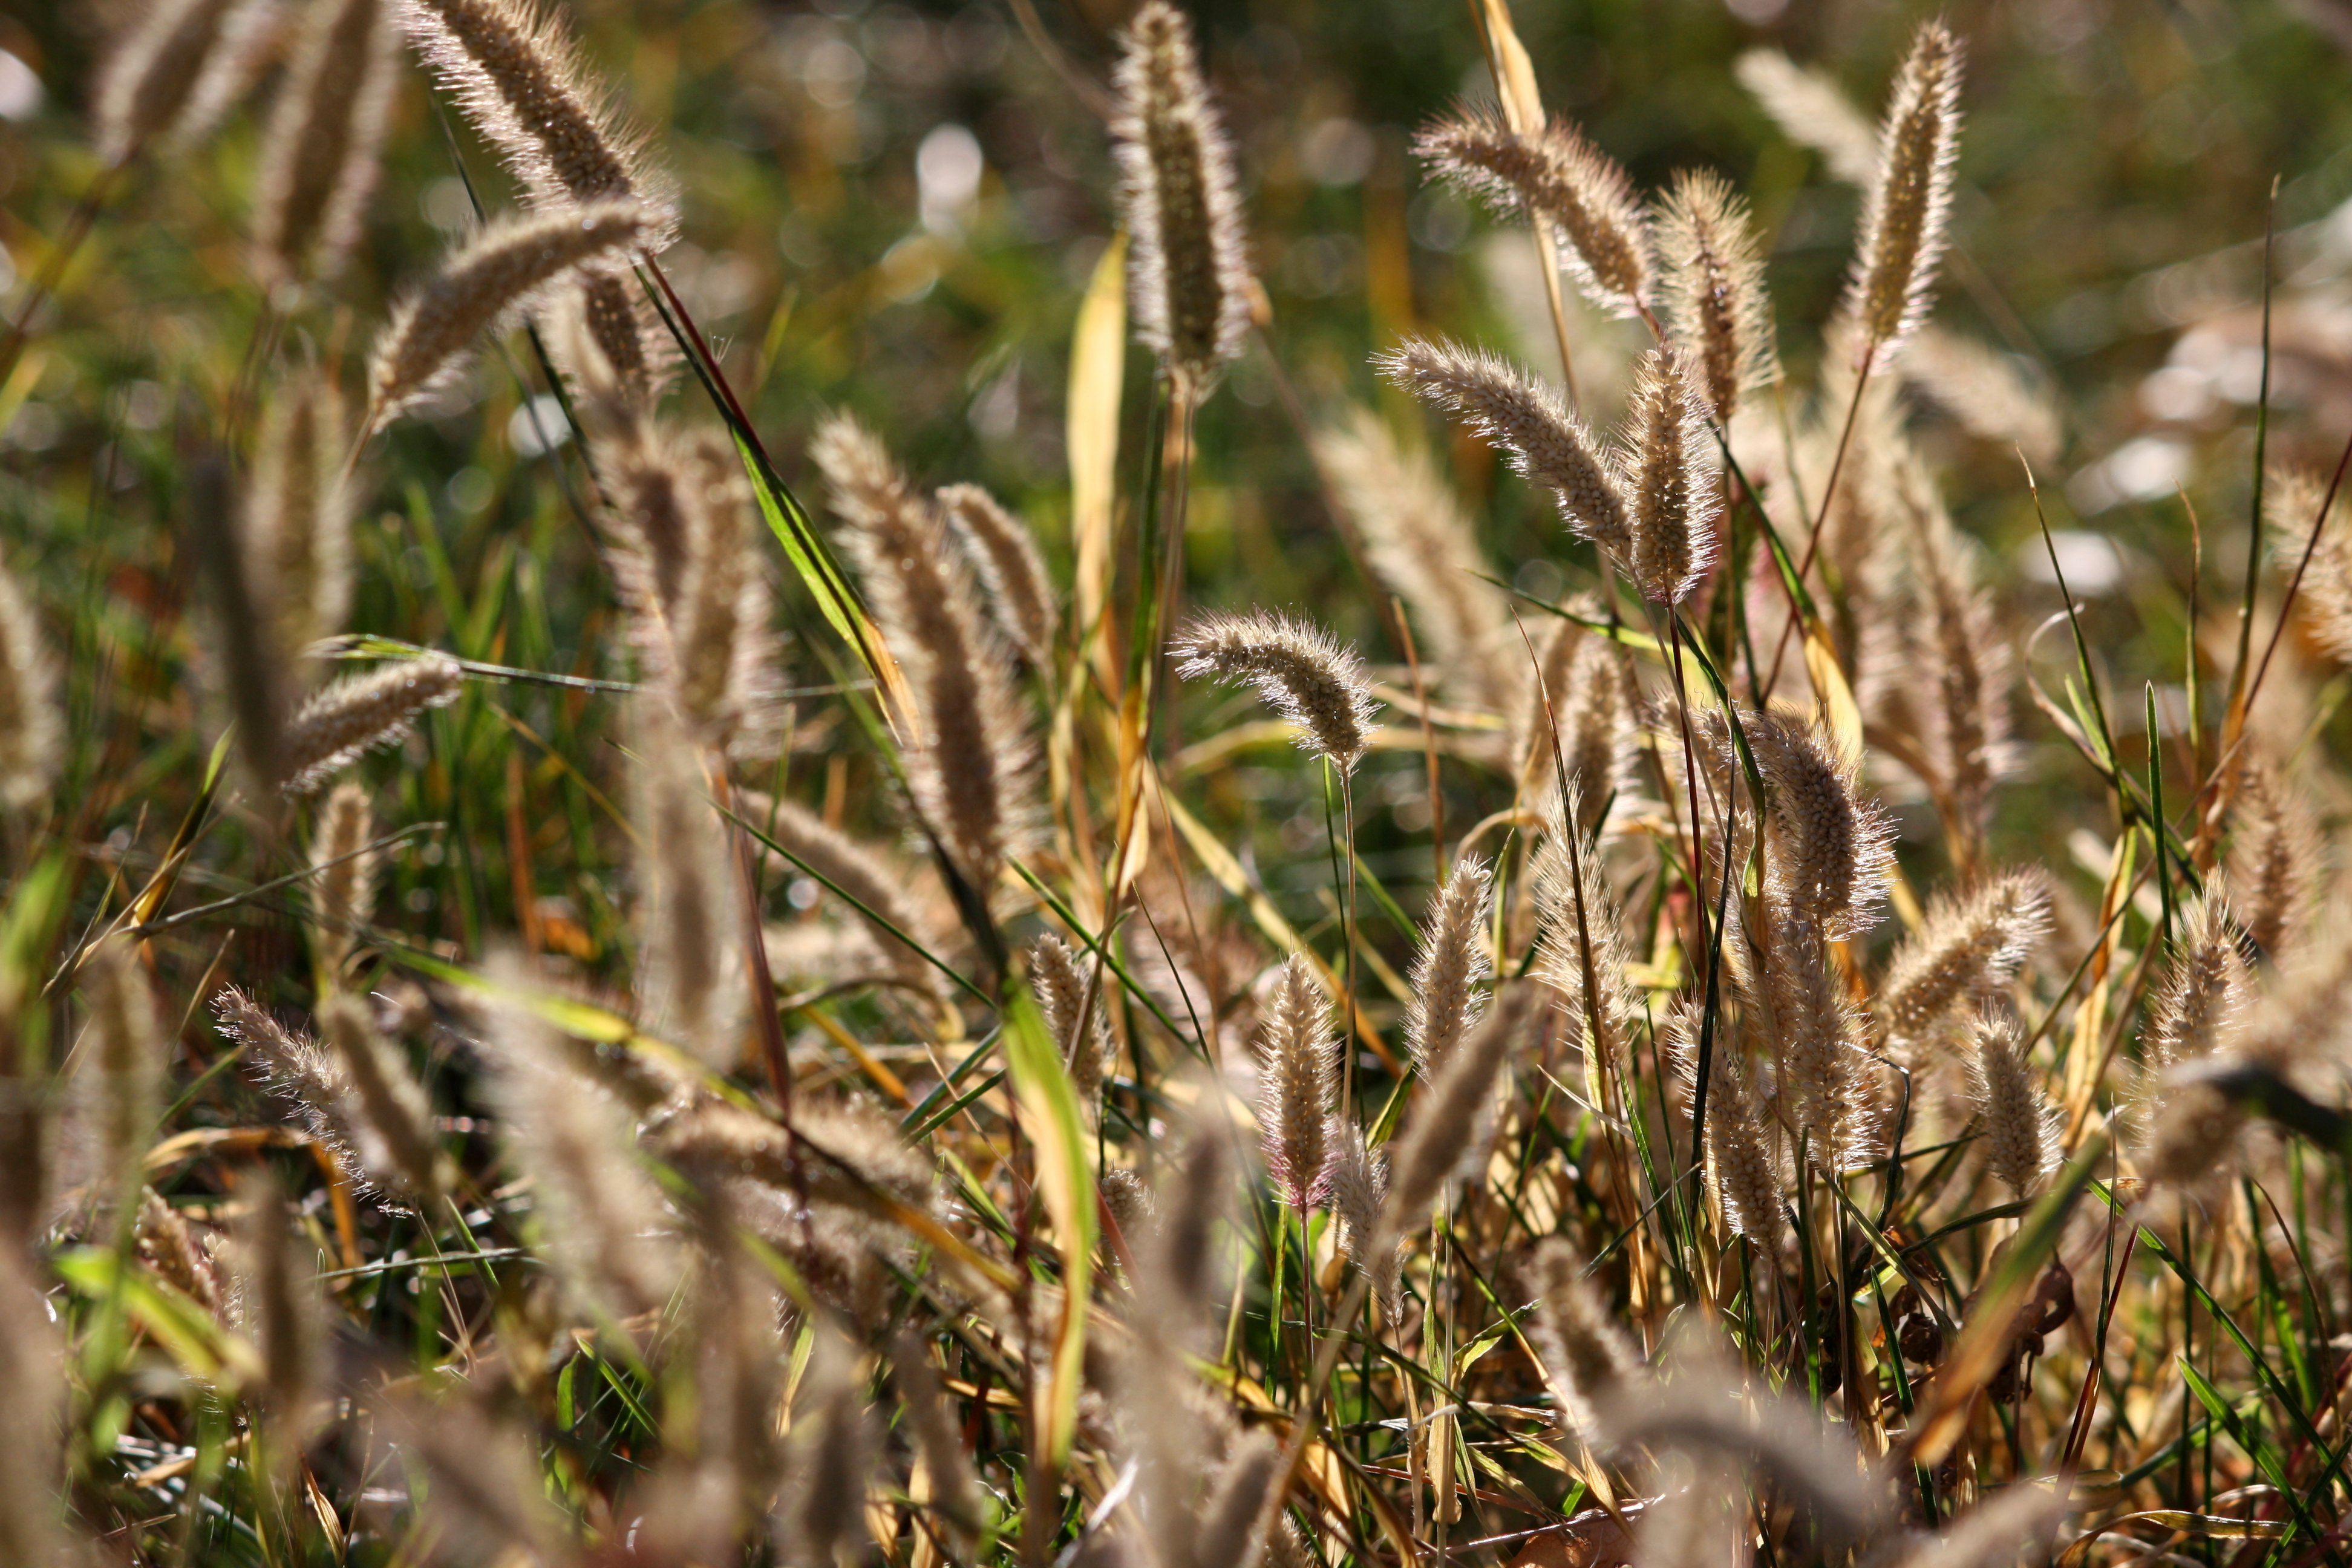 Wild Grass Seed Heads Picture | Free Photograph | Photos Public Domain